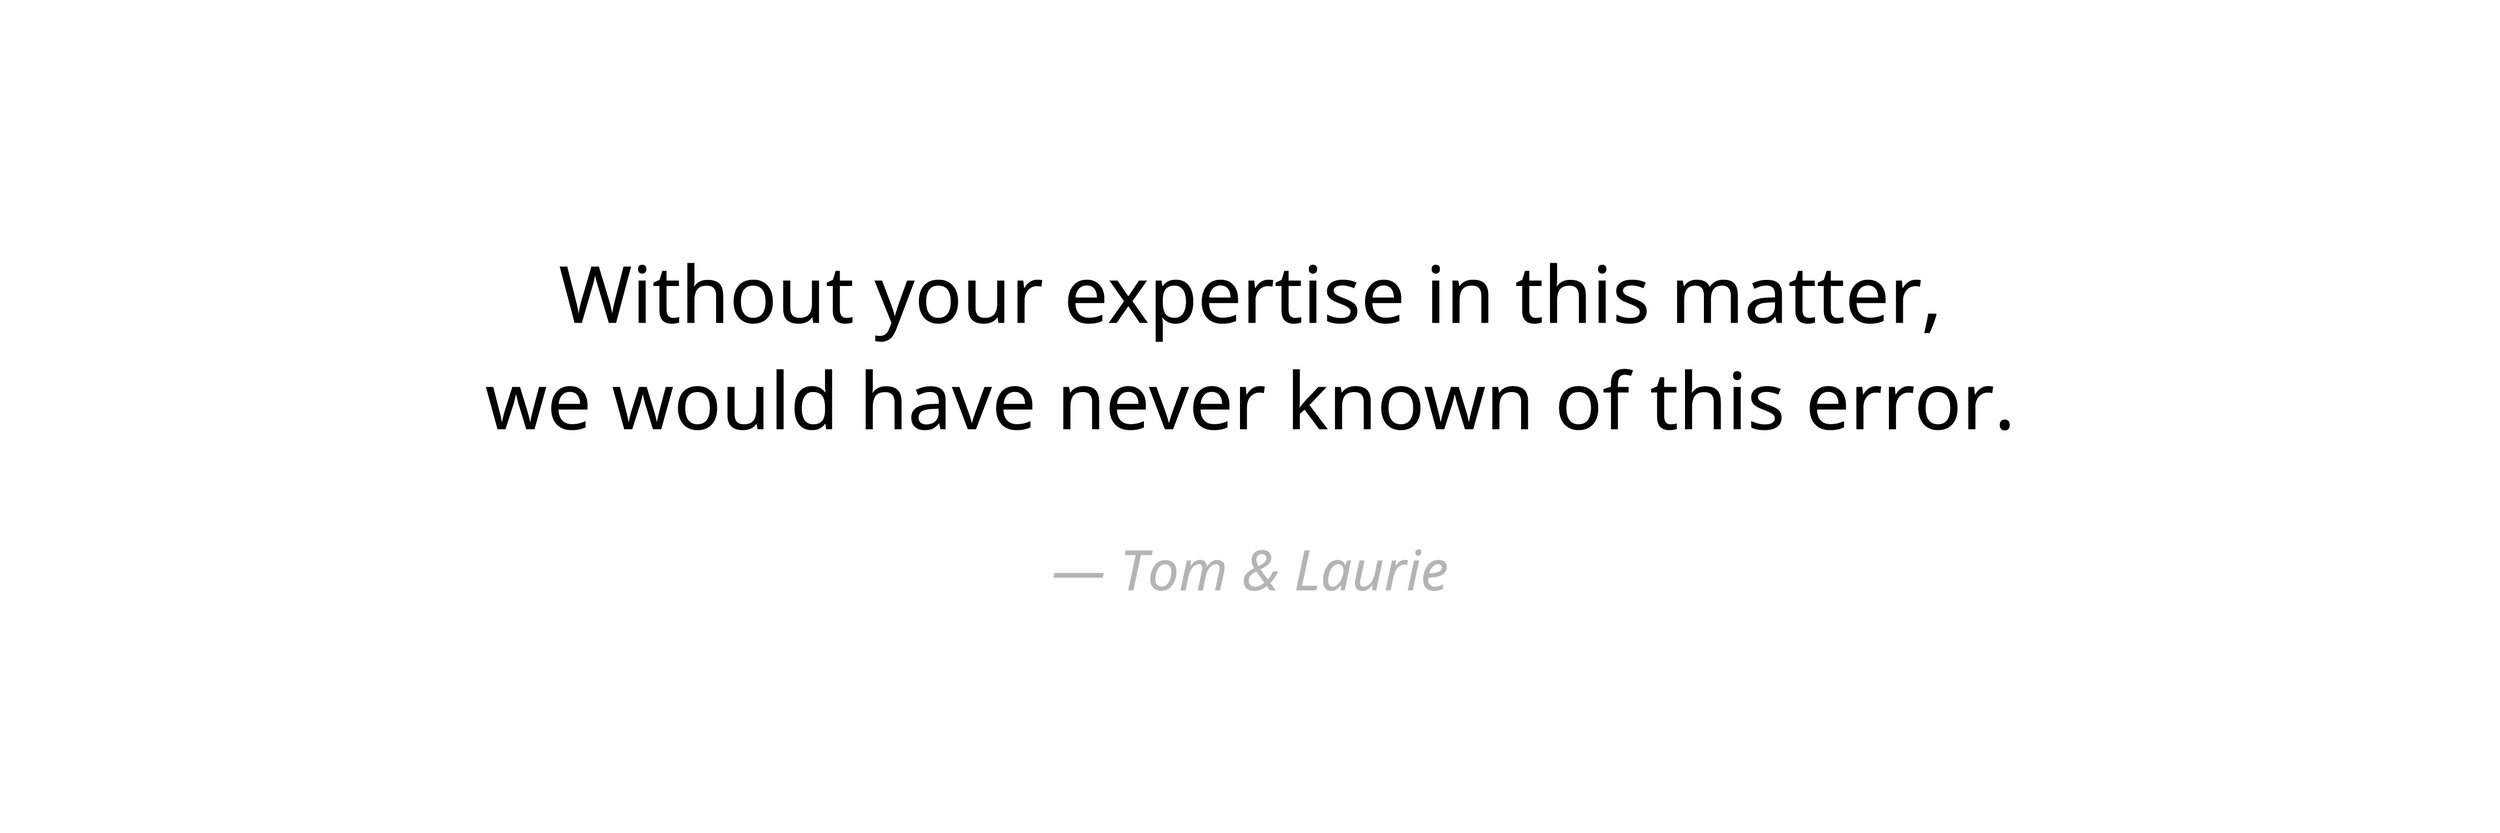 Testimonals_Home_tom&laurie-01.jpg